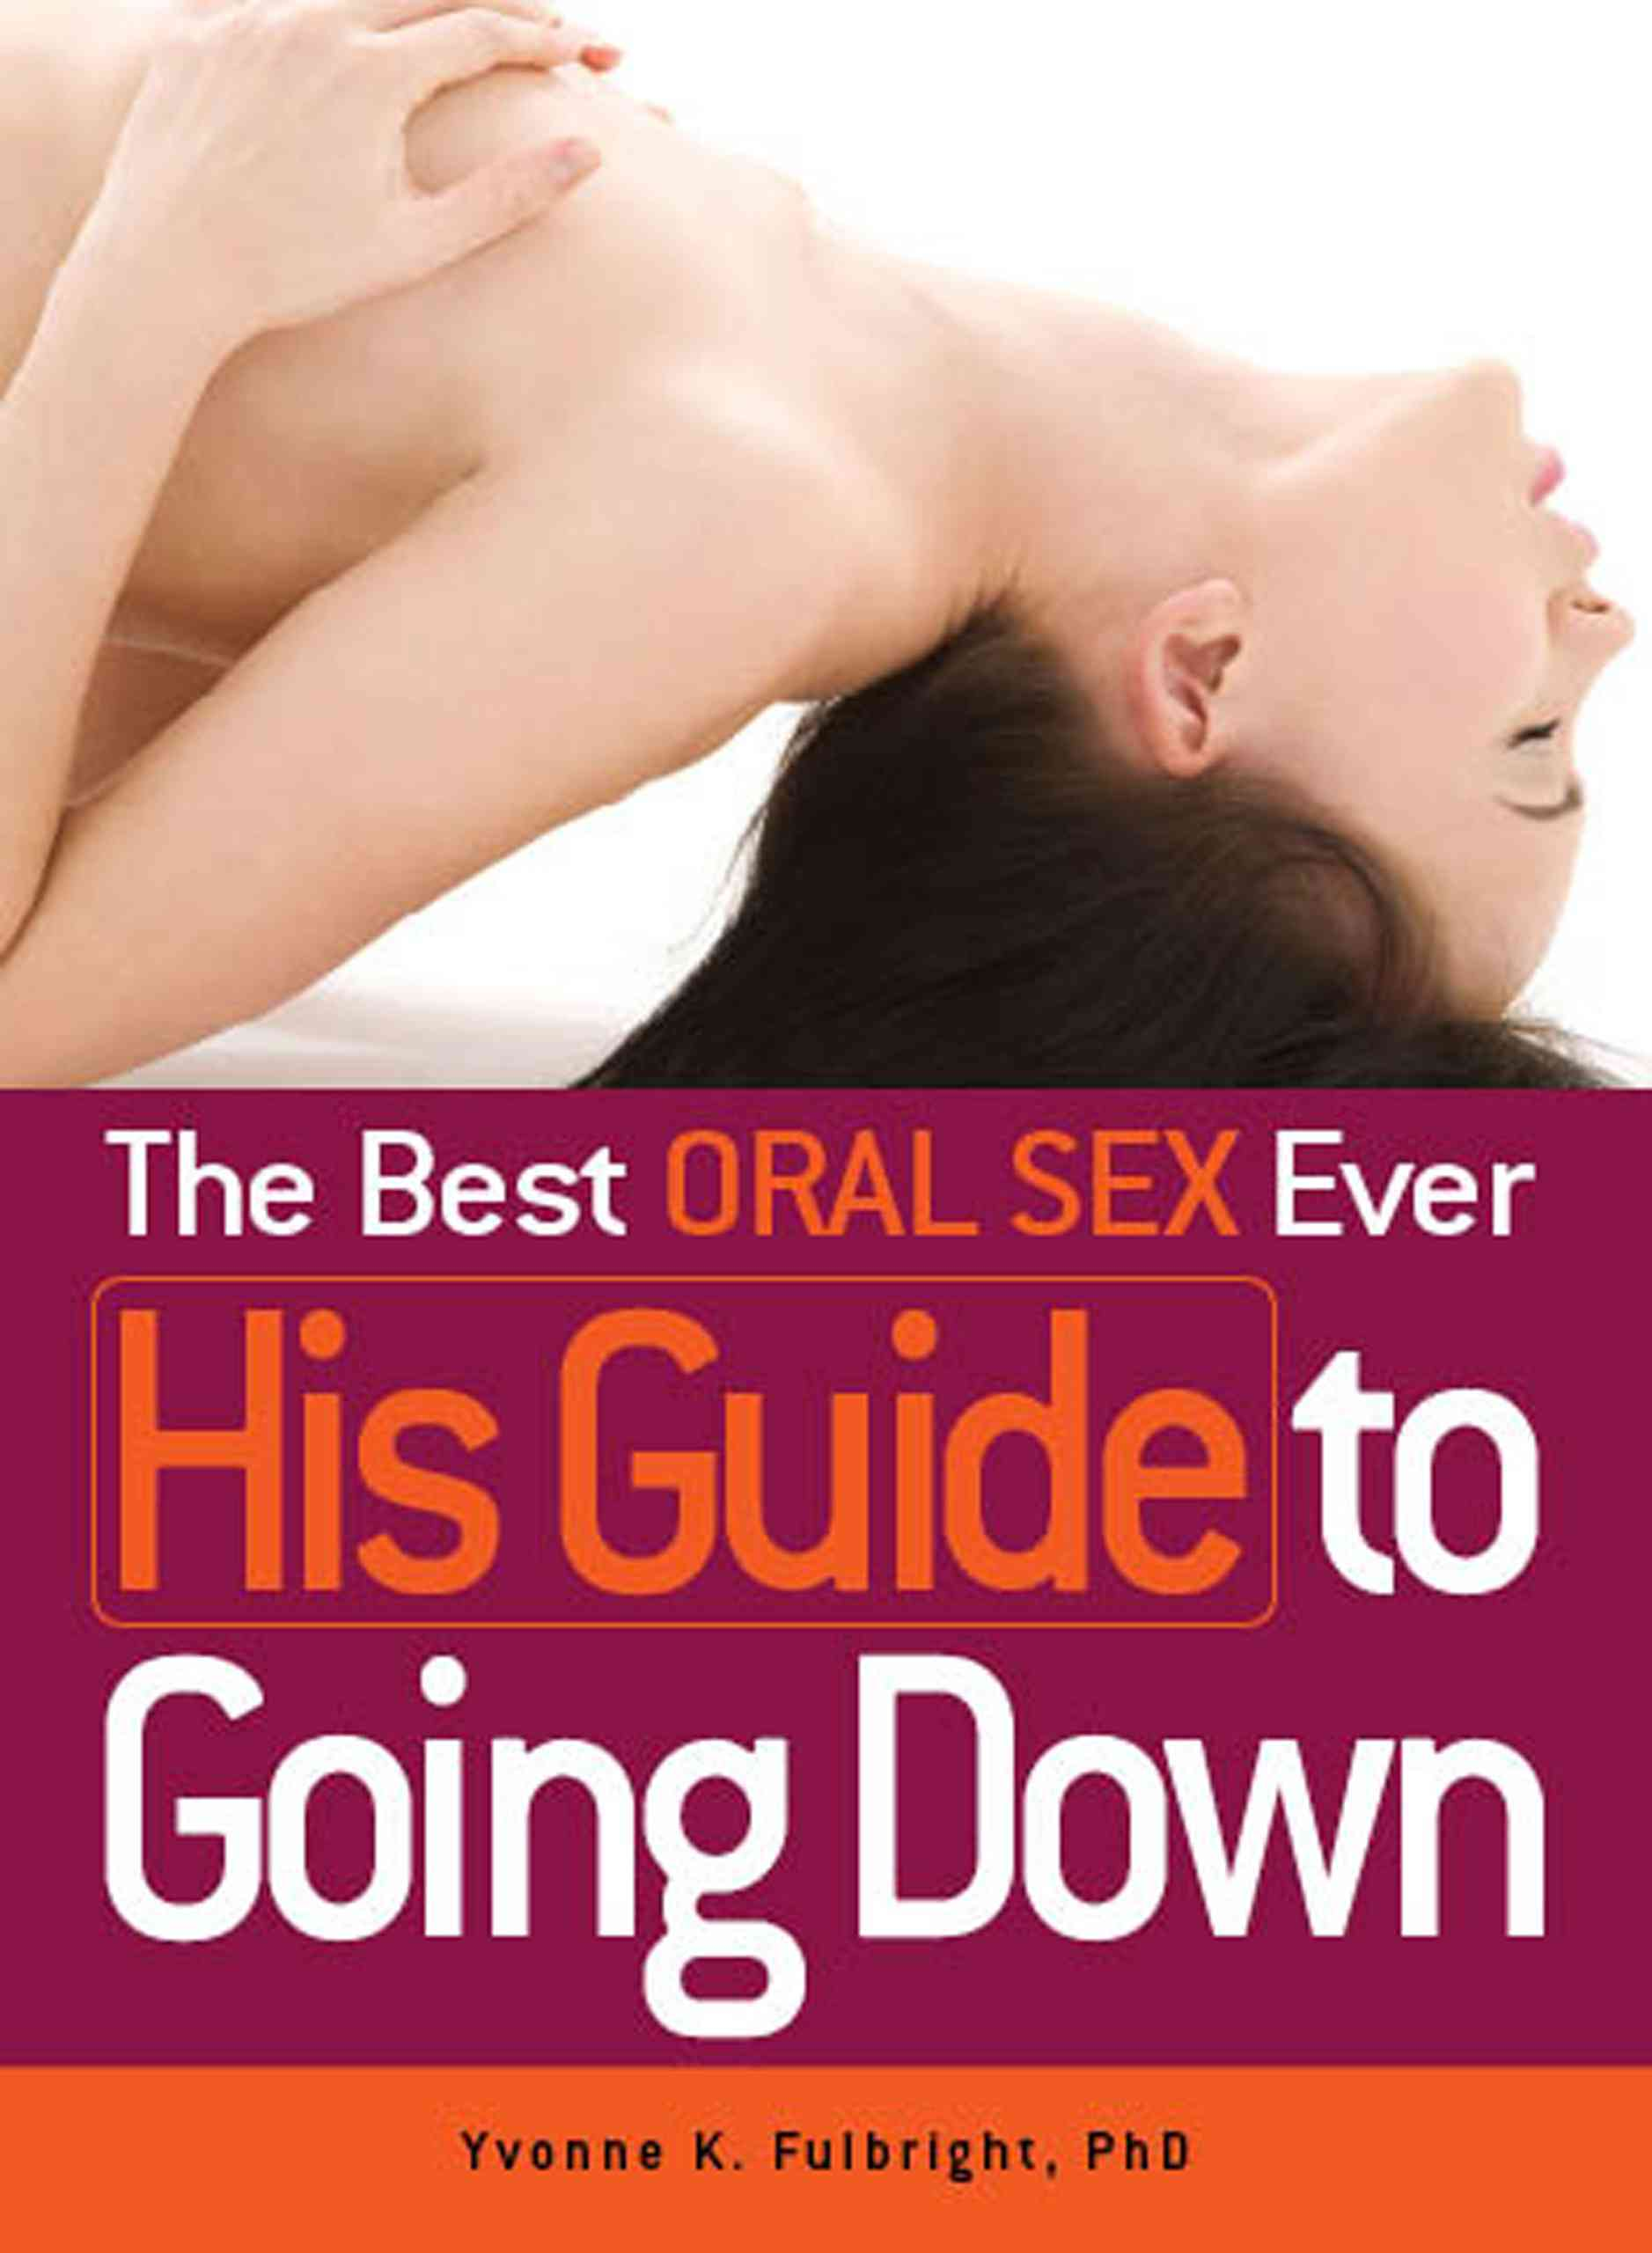 The Best Oral Sex Ever: His Guide to Going Down (Paperback)